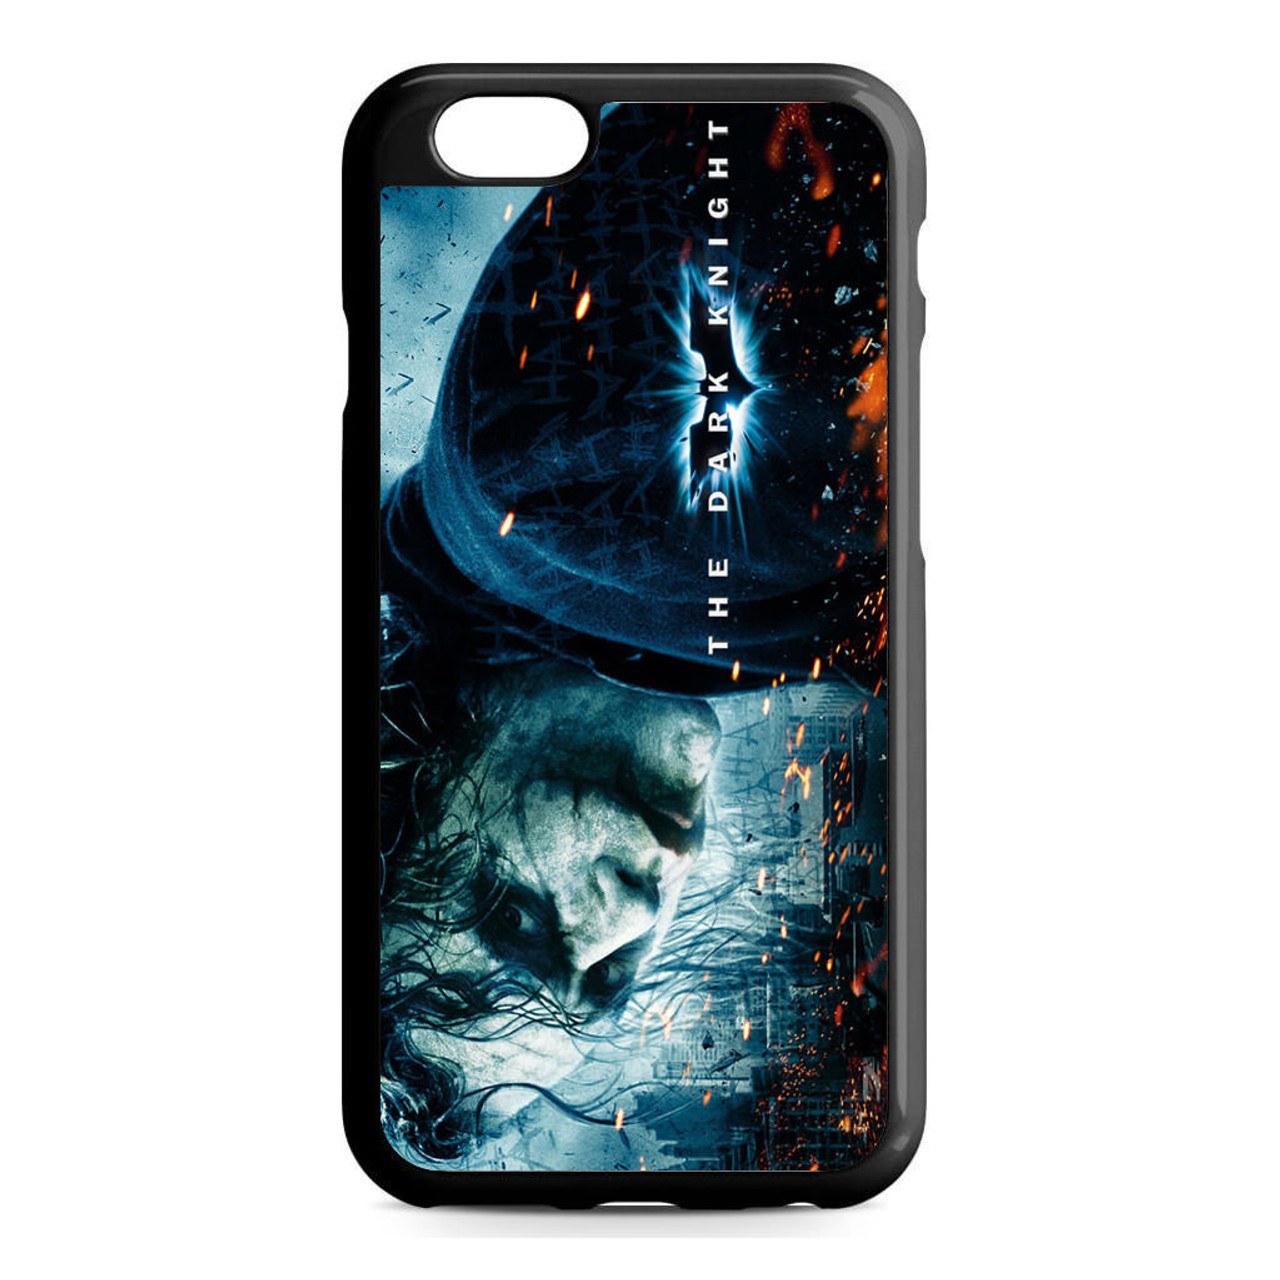 dark iphone 6 case